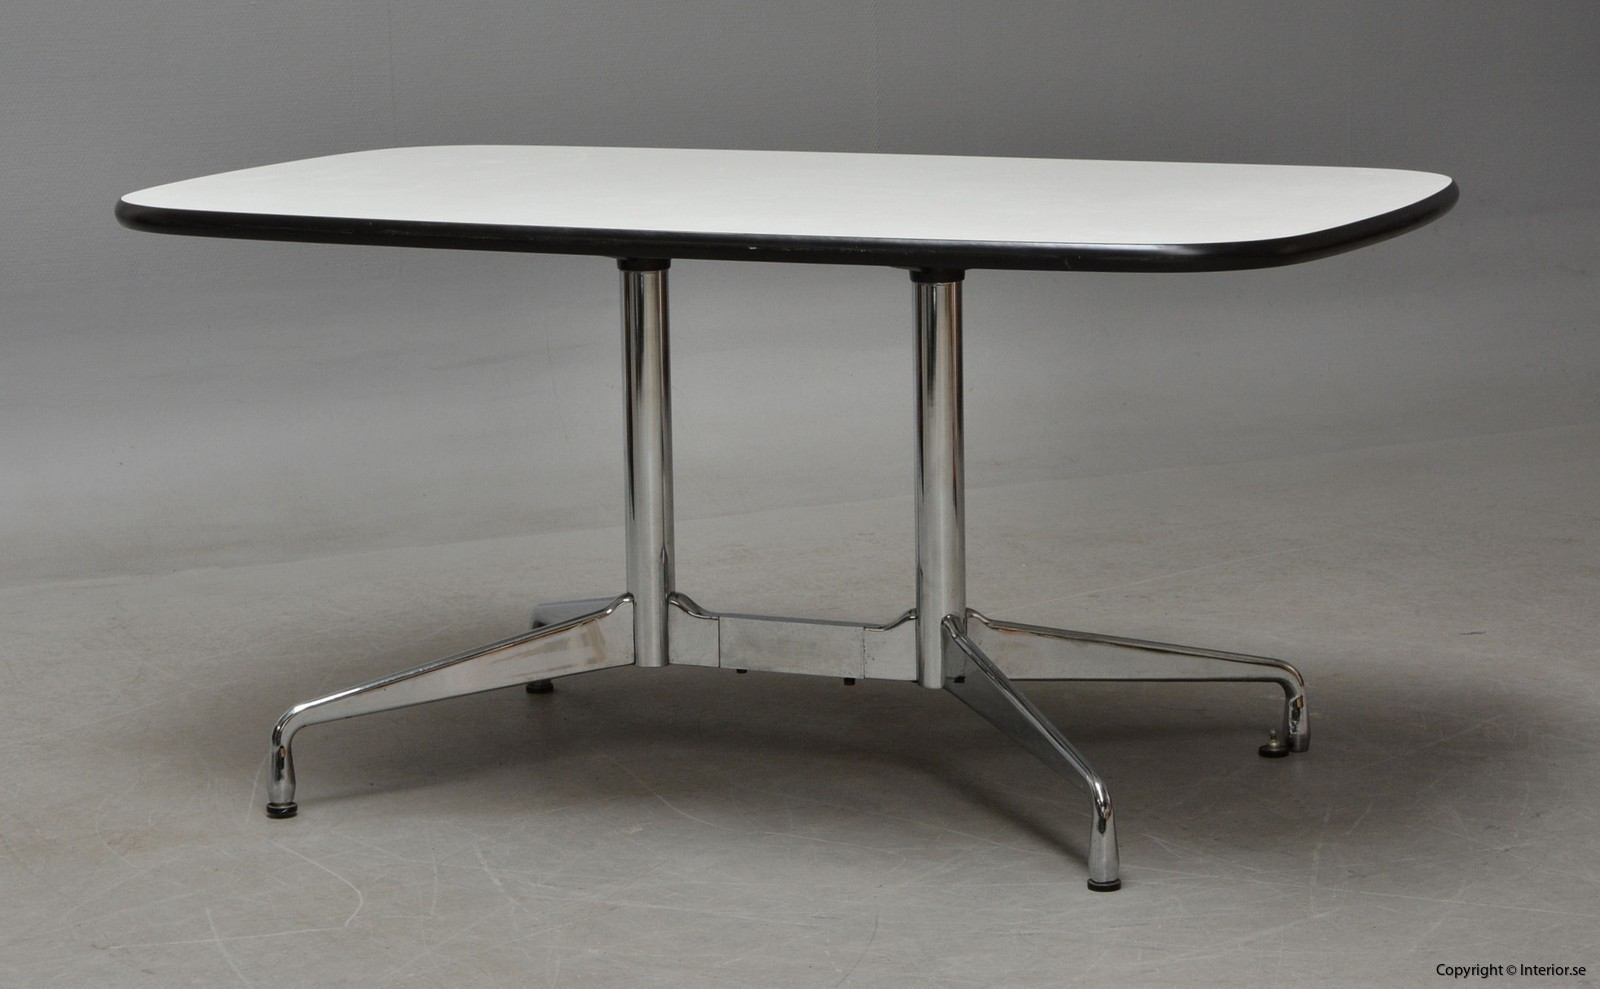 Bord table tisch Herman Miller Segmented Table - Charles & Ray Eames